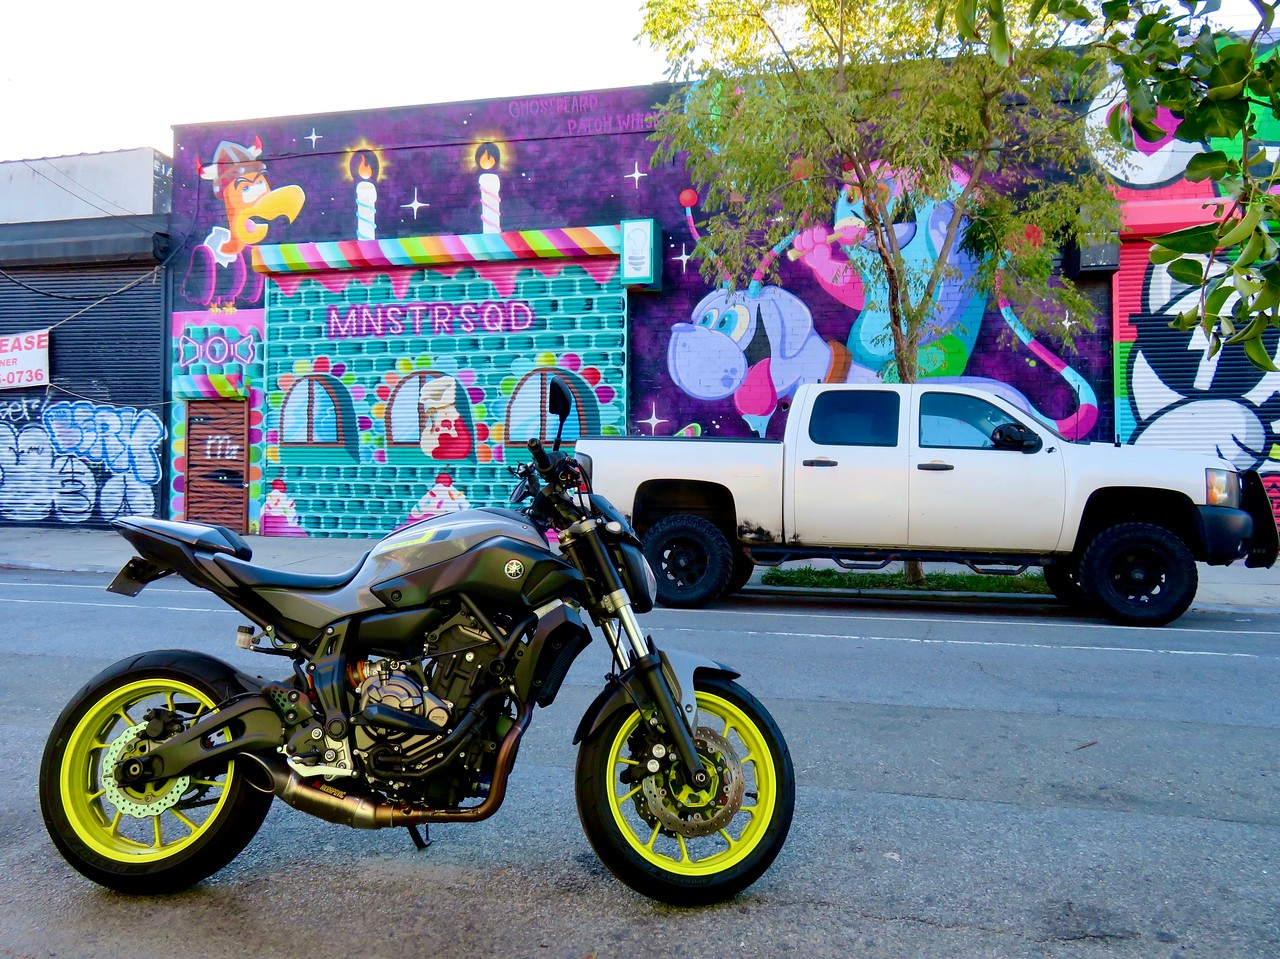 yamaha fz07 motorcycle parked in front of mnstrsqd street art patch whisky ghostbeard